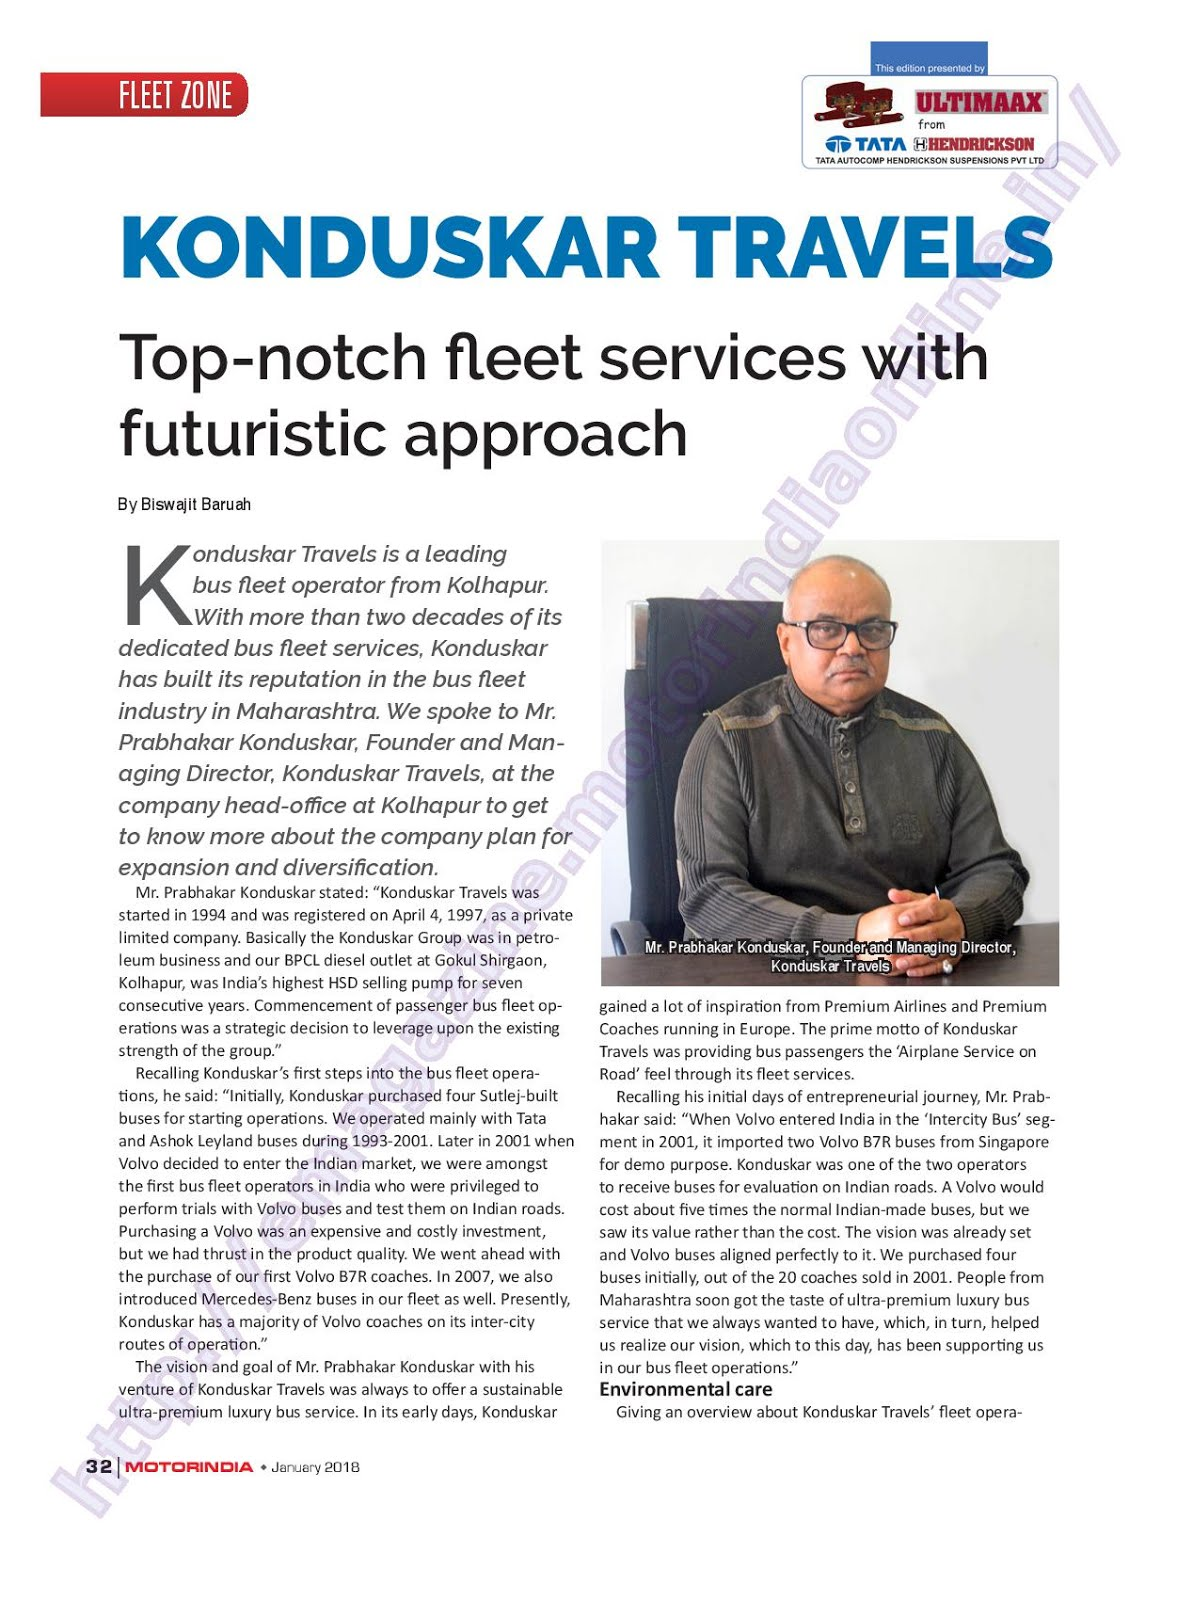 MOTOR INDIA ARTICLE 25 : KONDUSKAR TRAVELS